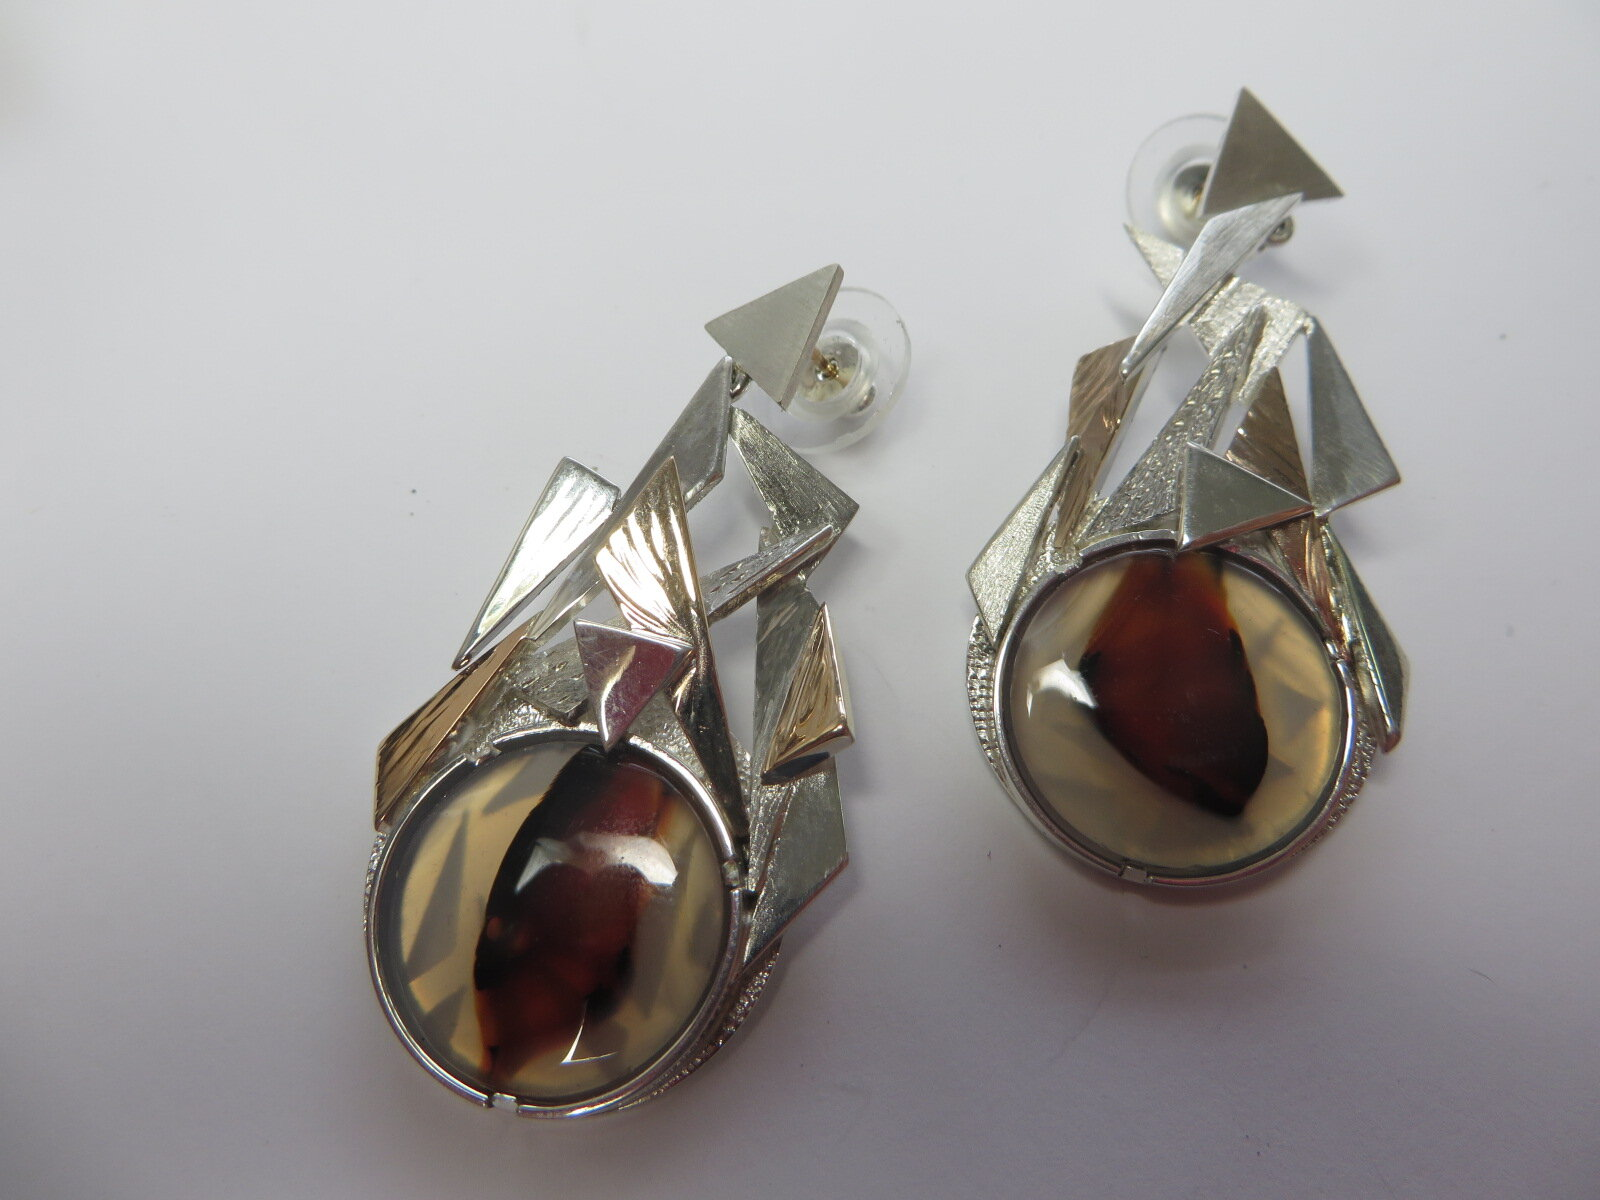 Agate Earrings Commission ,hand made in Silver and 9ct Gold by QV Jewellery.